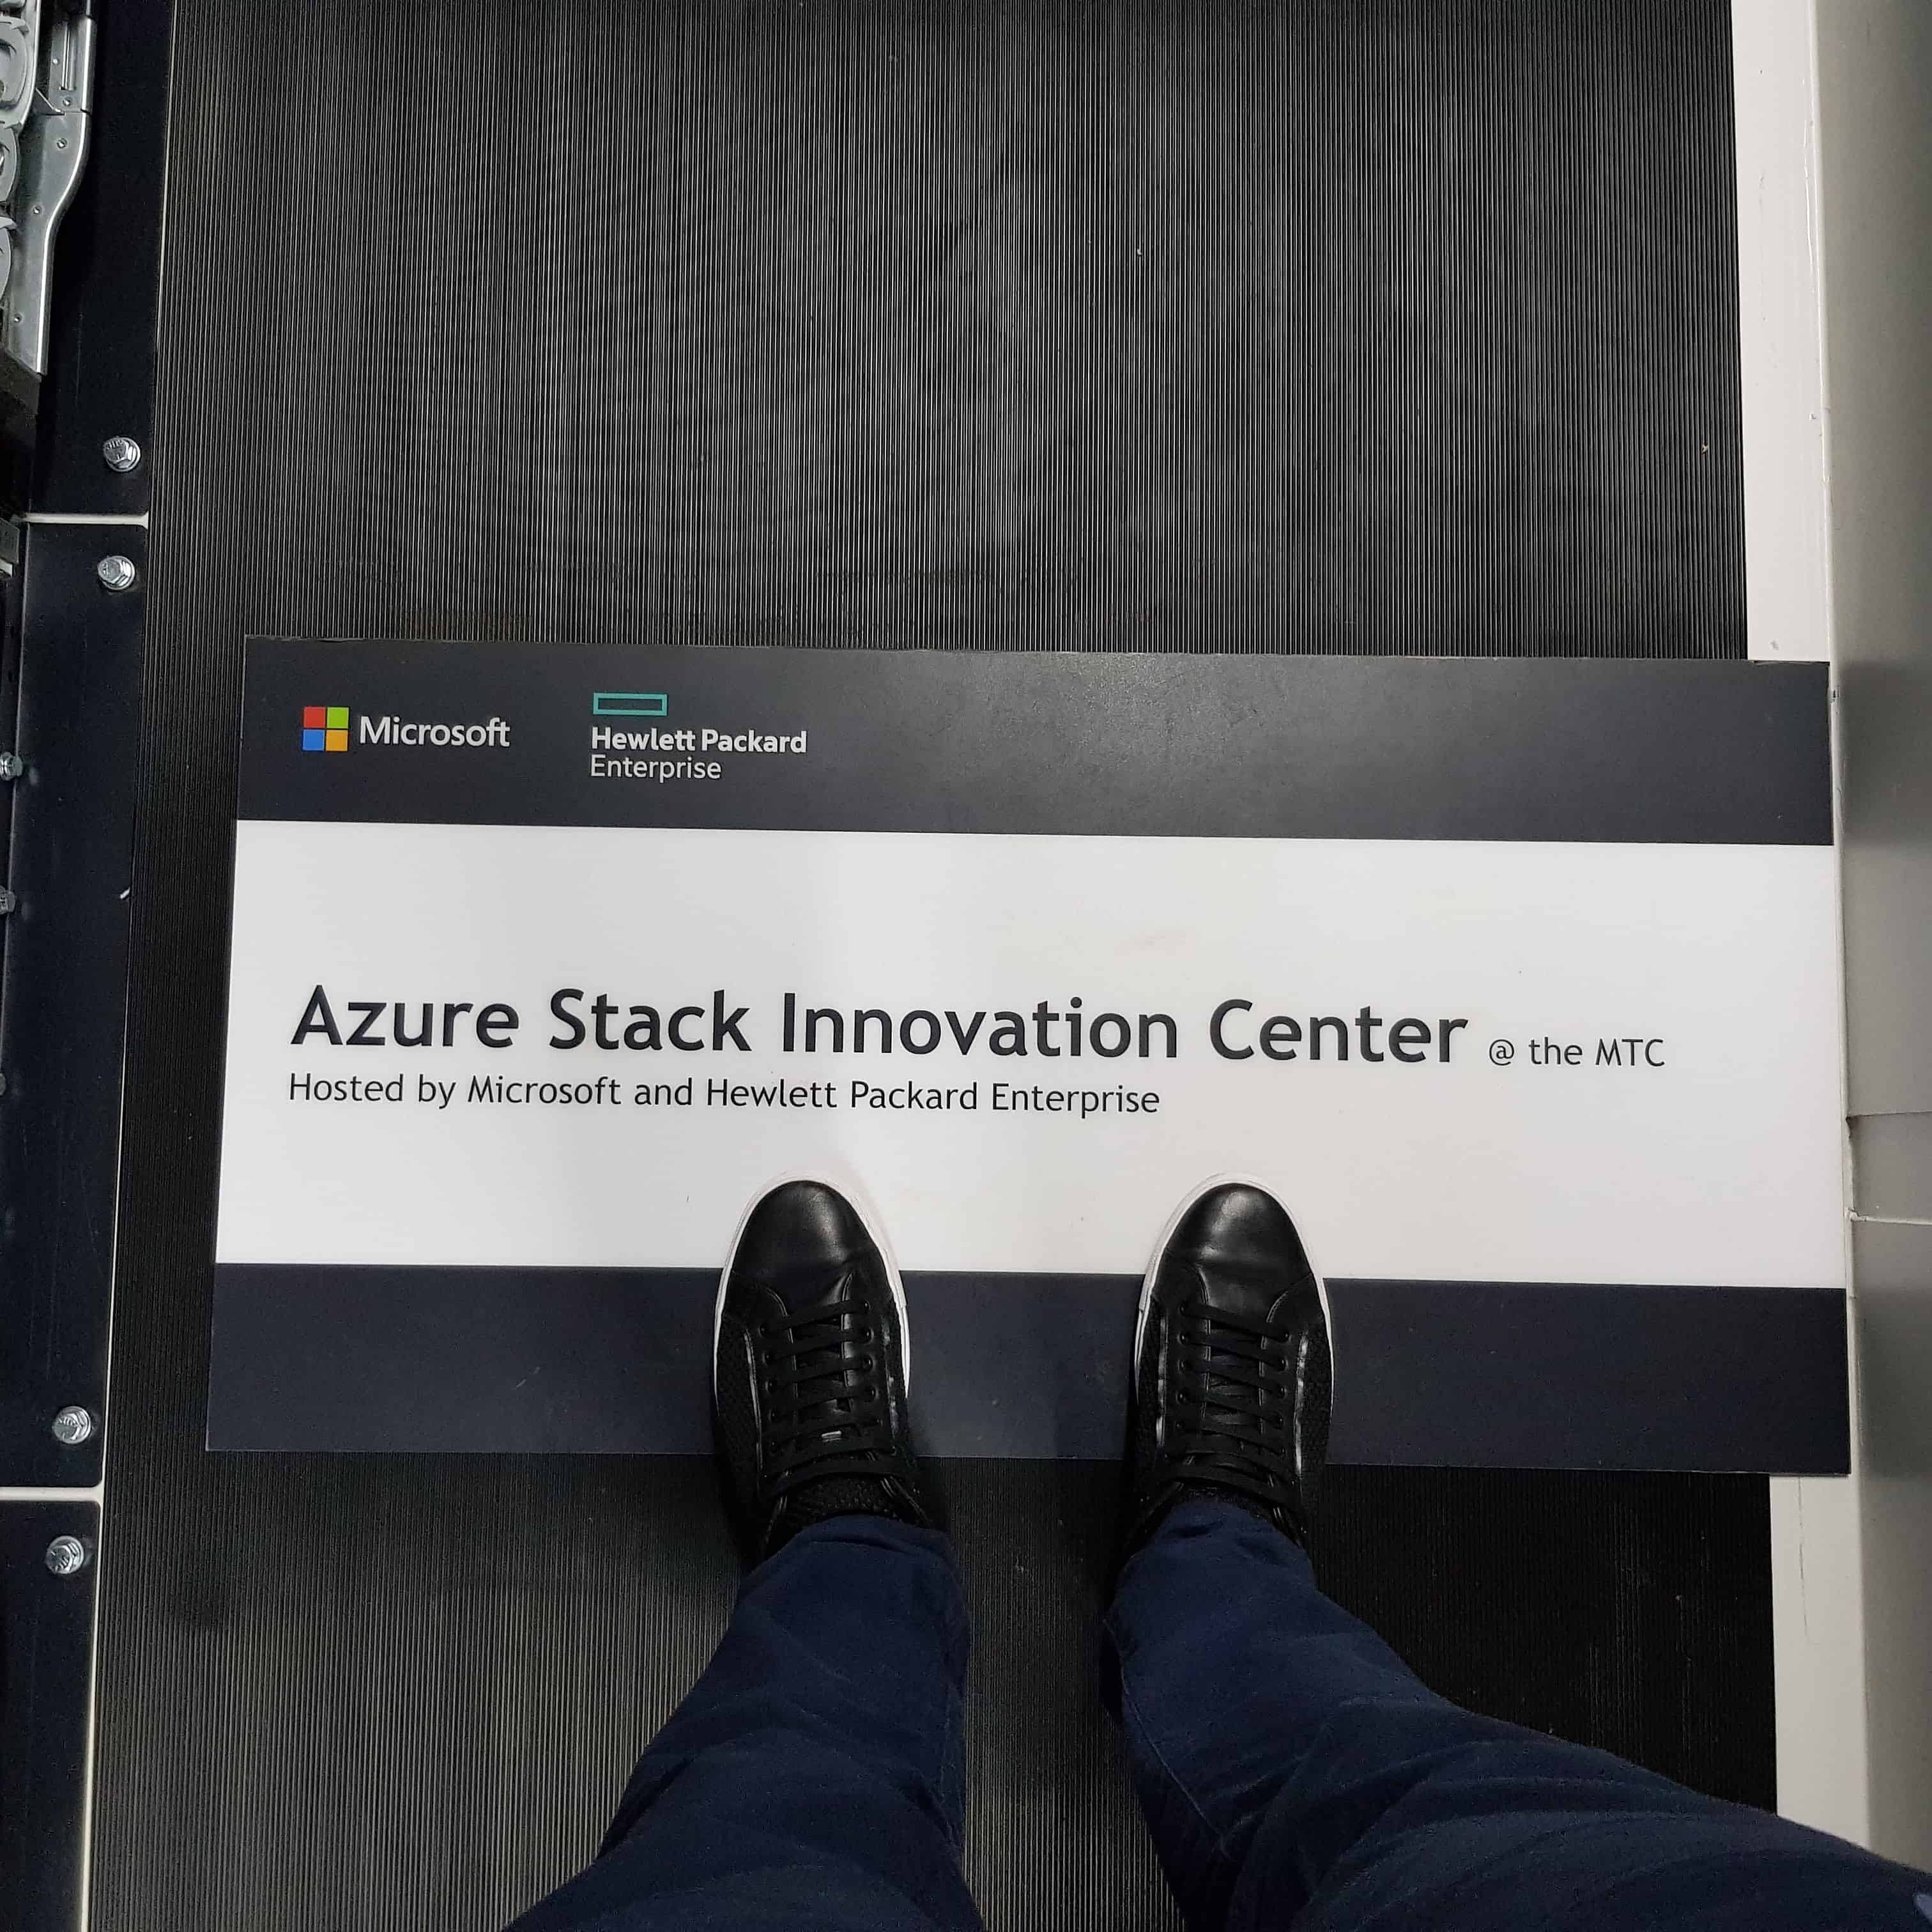 HPE Azure Stack